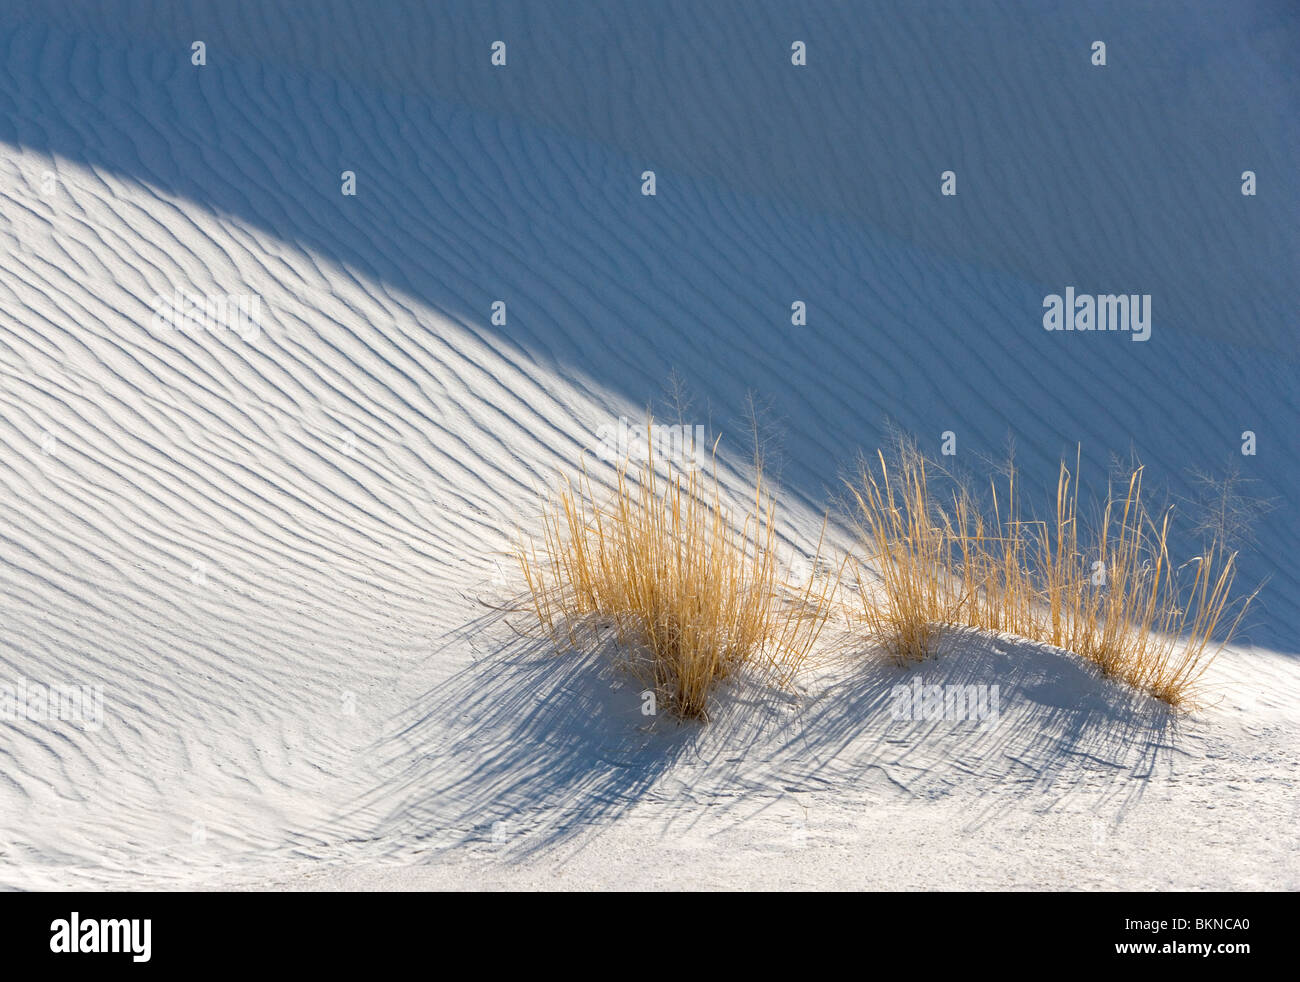 Grasses grow next to a white sand dune at White Sands National Monument, New Mexico. - Stock Image